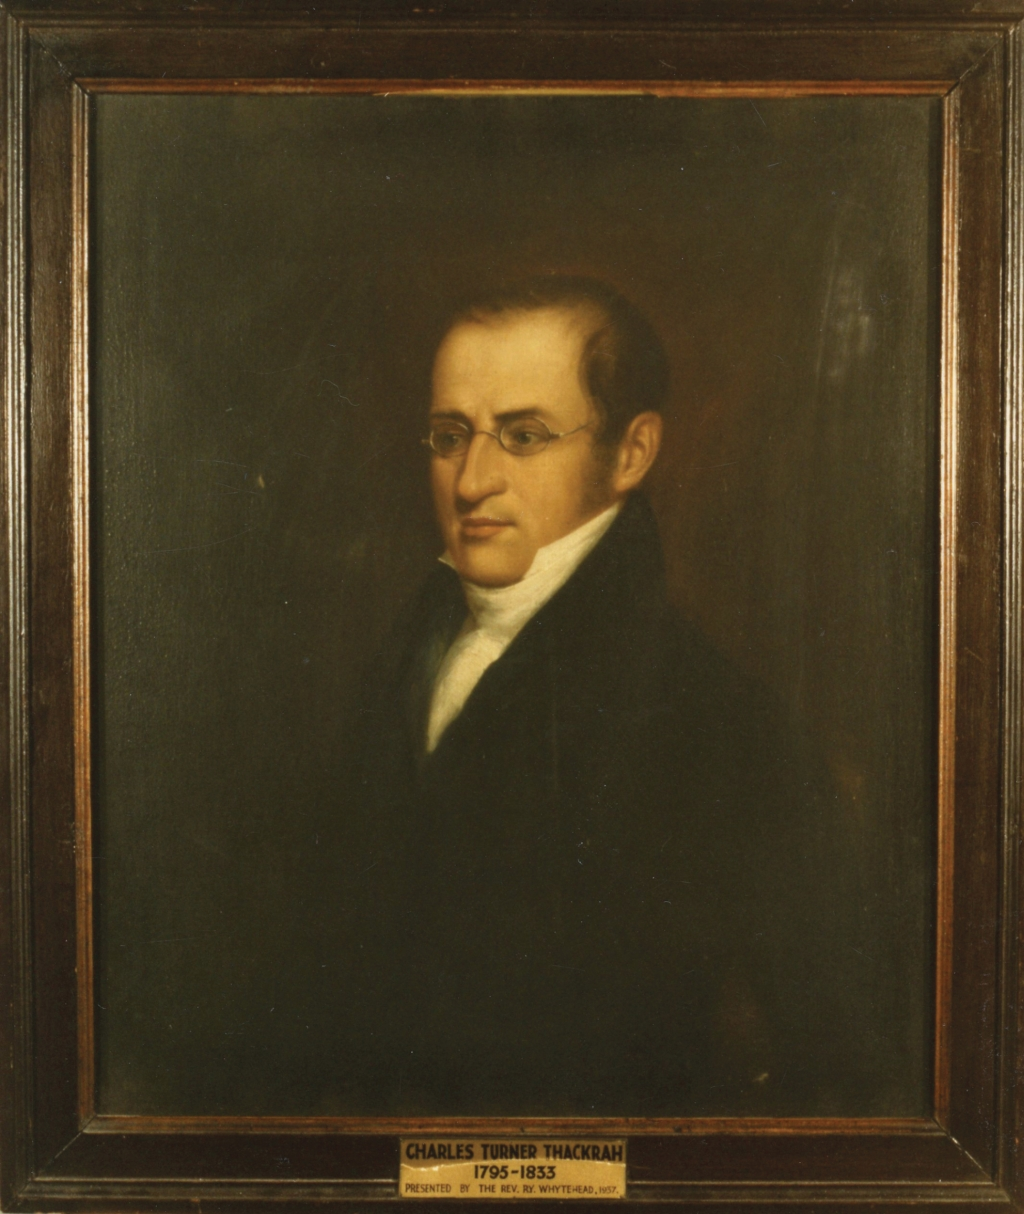 Charles Turner Thackrah (1795–1833), Founder of Leeds Medical School by C. Milnes, 1823, oil on canvas. ©The University of Leeds Art Collection.